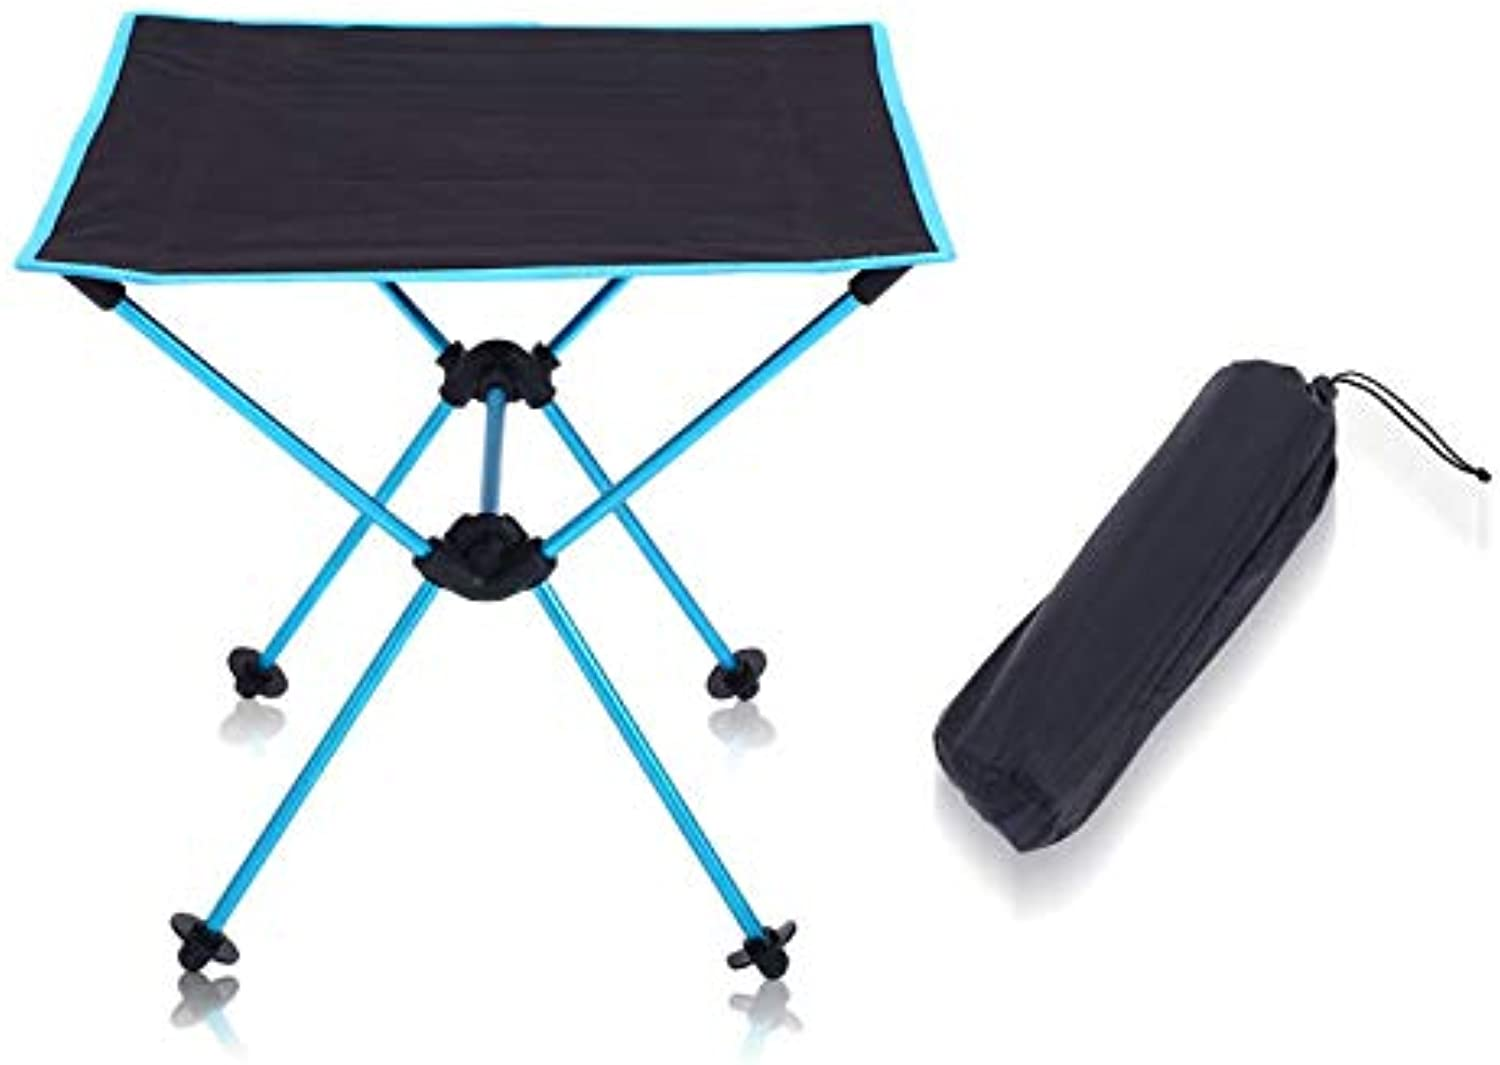 Camping Table Outdoor Camping Portable Multi-Purpose Folding Table Waterproof Oxford Cloth. Outdoor & Indoor